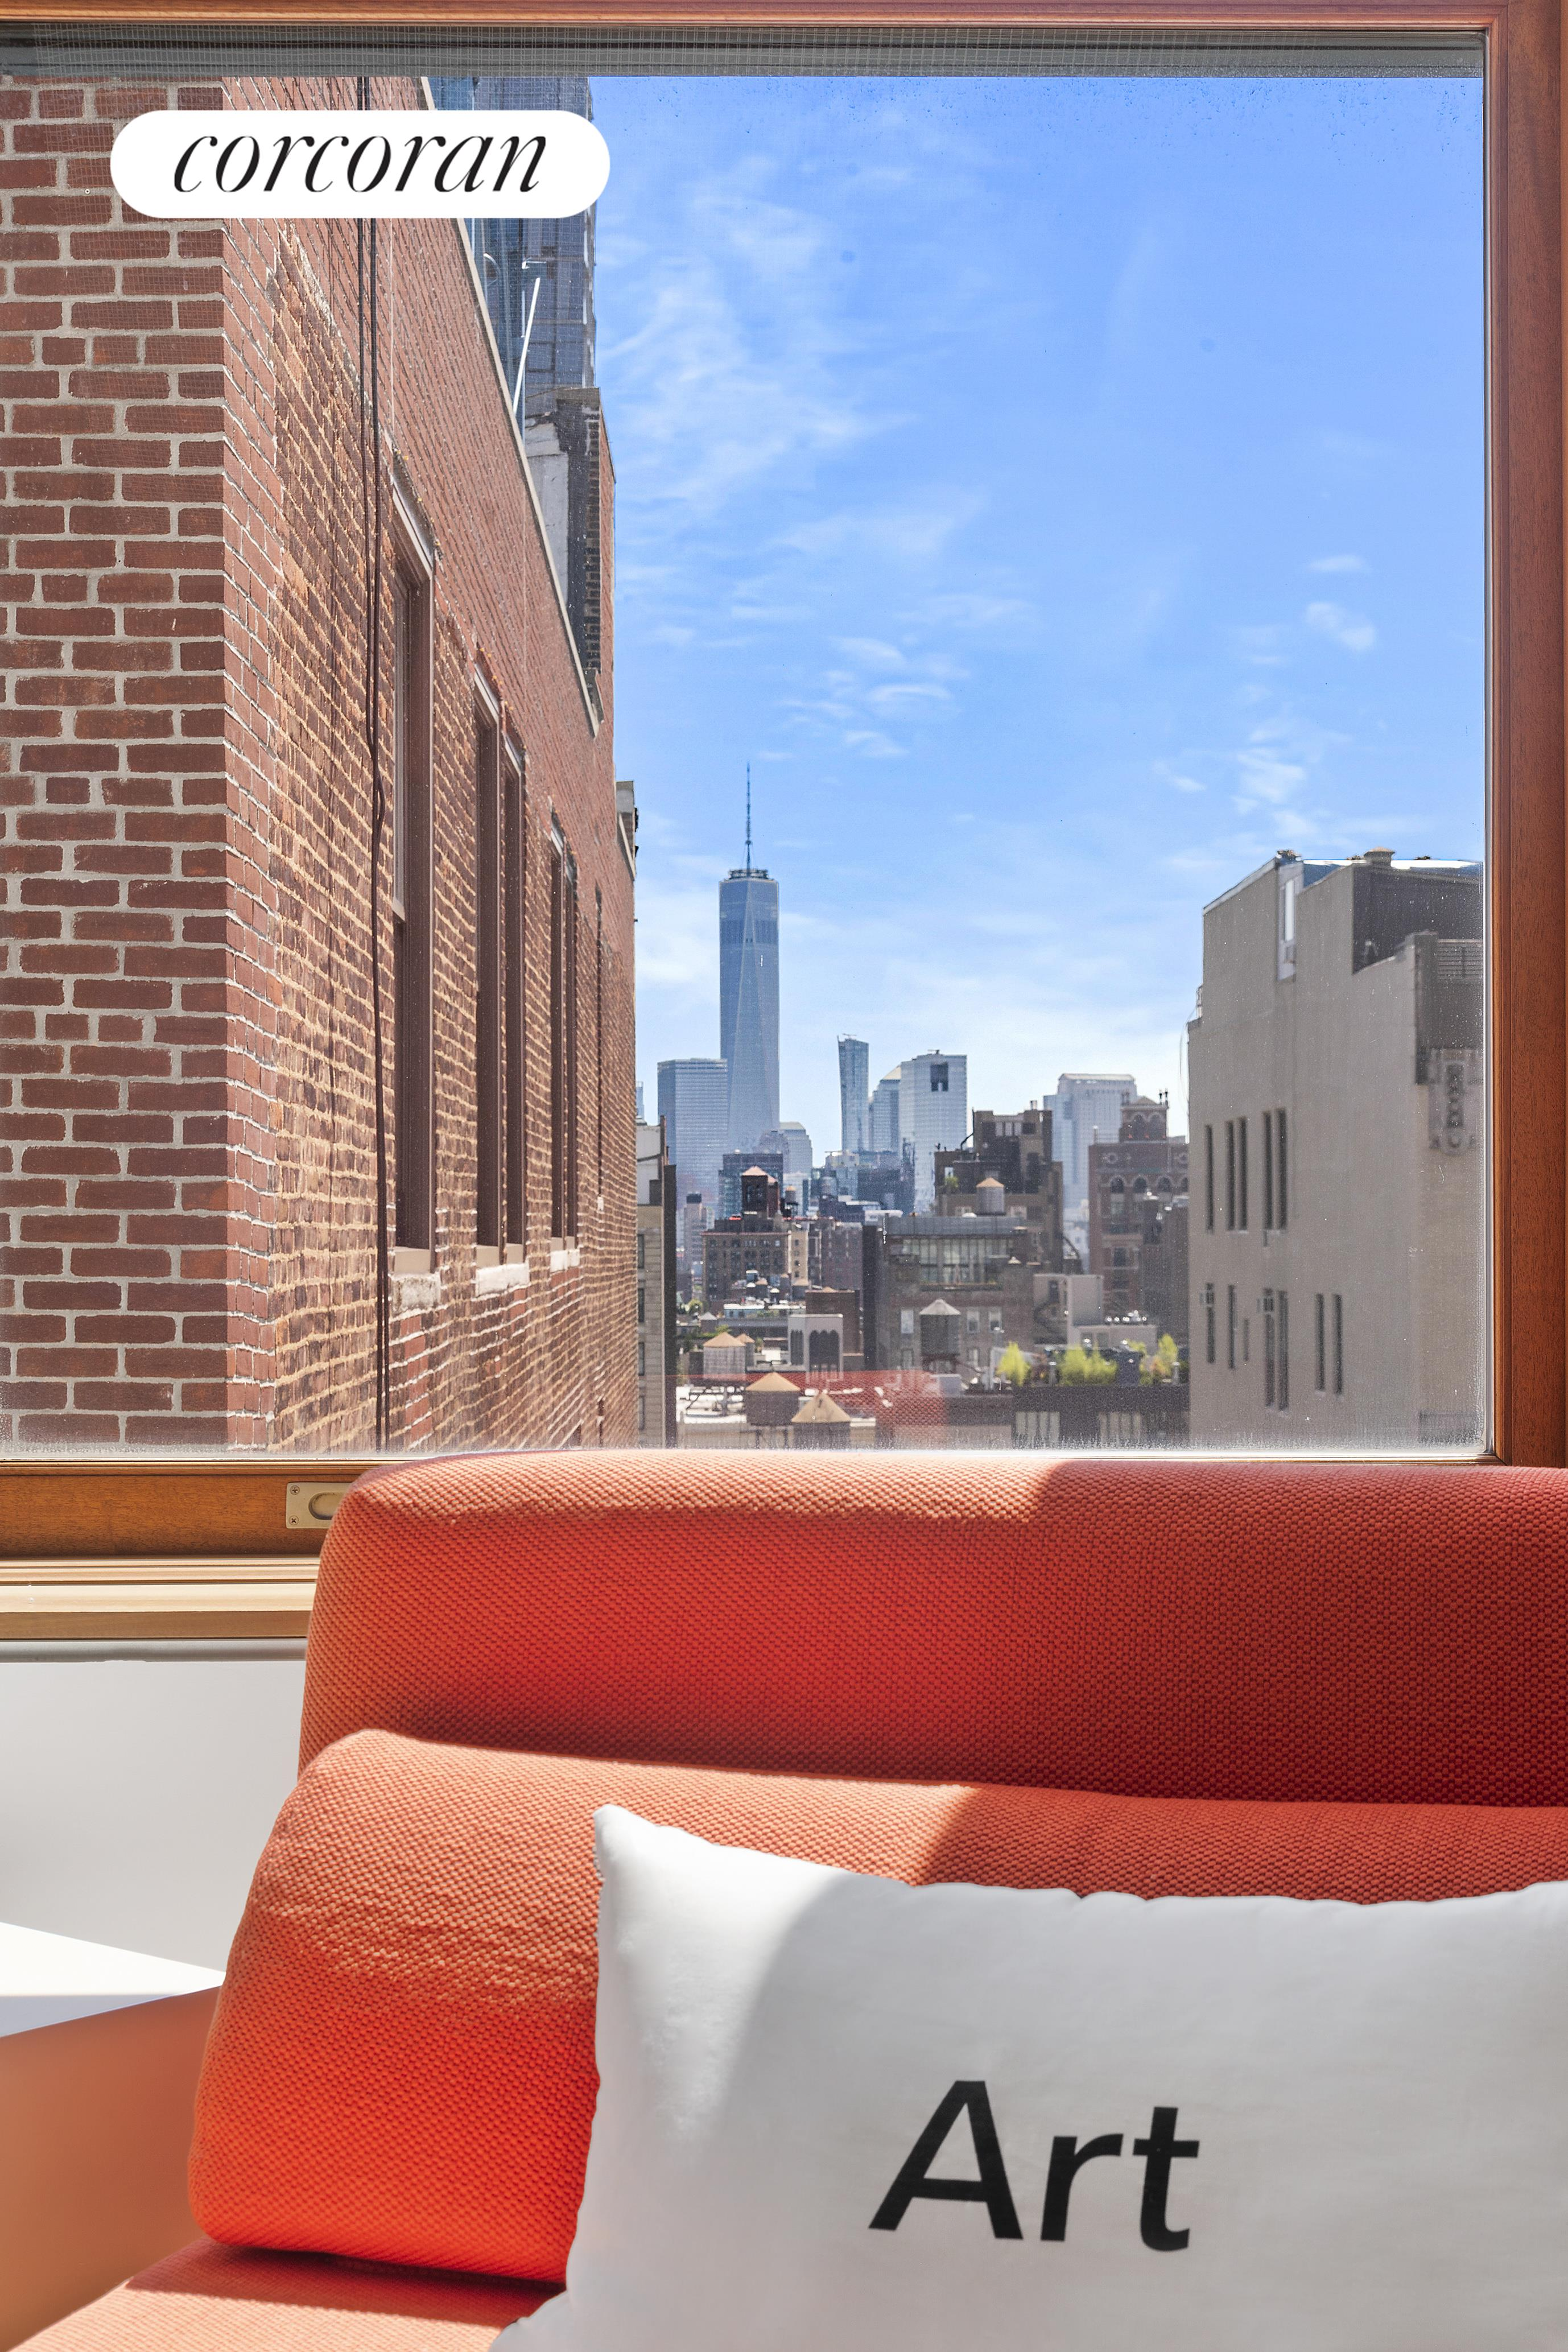 """Privacy, Views and Endless Living Space at an Unbeatable Price!!!!   During this most unique time in New York City real estate, seldom does an opportunity like this arise to purchase a remarkable PH loft at a substantially reduced and currently, below-market price. This property was originally offered for $20million, listed at $15million and now available $9,995,000. This price represents less than $1300 per square foot, based on total interior and exterior square feet. In addition, the monthly costs of common charges and real estate taxes are less than $2.50 per square foot based on interior square footage only!    At 50% off of the original price, this is the best priced condominium PH available in New York City!    This full-floor, key-locked elevator loft at 32 West 18th Street is a combination of two penthouse apartments,12A and 12B.    The massive open living space boasts a well-appointed kitchen, oversized great room with two gas fireplaces, dining room, home office, den, a separate secluded play room and five bedrooms featuring en-suite bathrooms and an additional half-bath. A huge laundry room and significant additional storage round out this home's fabulous features.  Outstanding views are one of the extraordinary features of this home. There are both North and South walls of windows with expansive, astonishing city views. Northern views display a spectacular vista of important NYC landmarks including the Empire State Building and The Chrysler Building and as a bonus, dazzling sunsets reflect off of Hudson Yards. Southern views are also brilliant, featuring the Freedom Tower, the """"Jenga"""" building and all of downtown Manhattan.  With endless entertaining areas and plentiful wall space throughout, this home offers so many opportunities. It has been referred to as """"An Art Lover's Dream"""" and the """"Ultimate Entertaining Mecca"""".  Relax on the two expansive, south-facing terraces. Take some time to step out on one of your exclusive terraces to enjoy a breath of fr"""